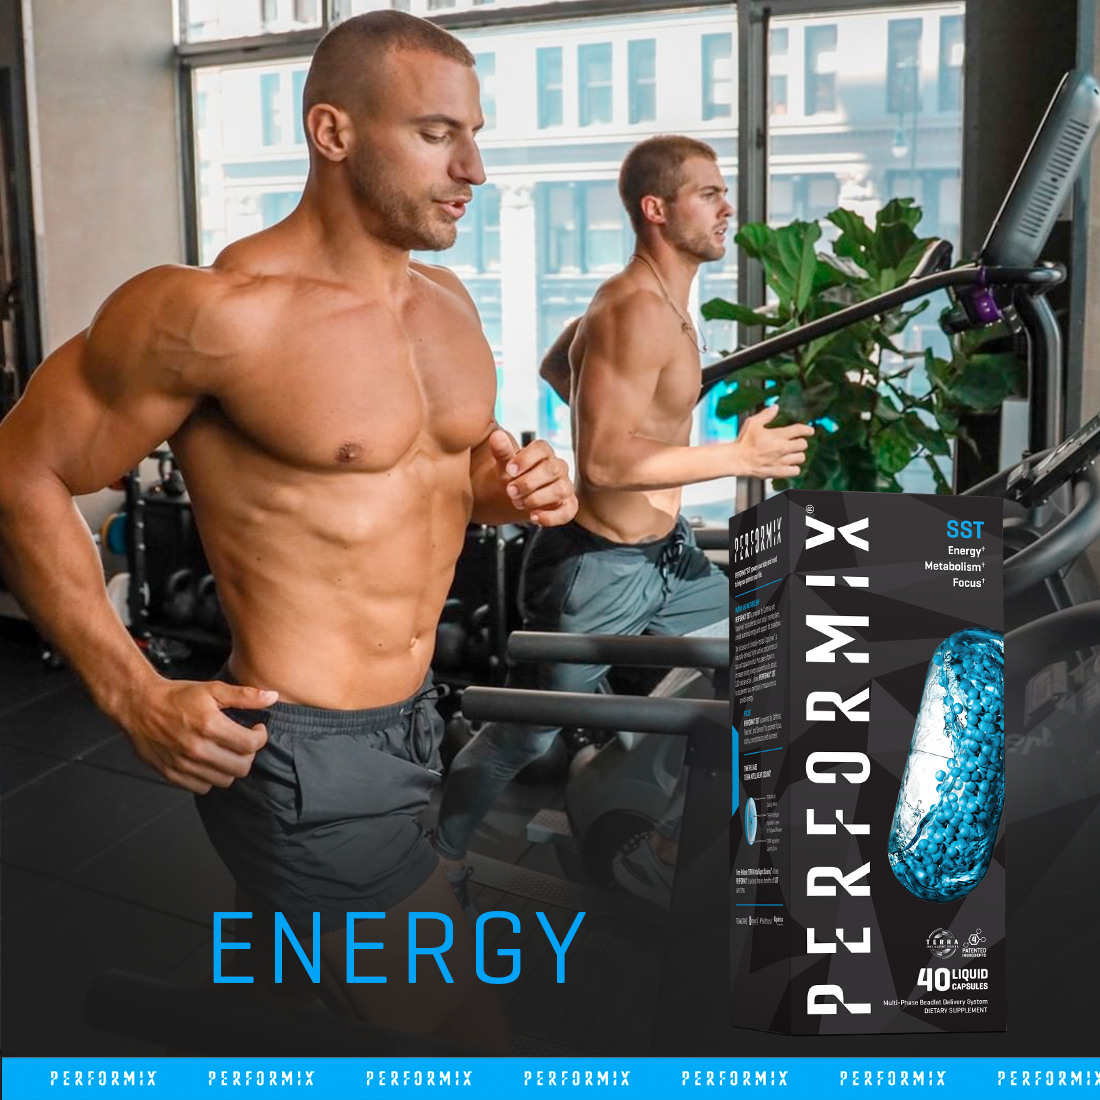 Performix SST Key Ingredients